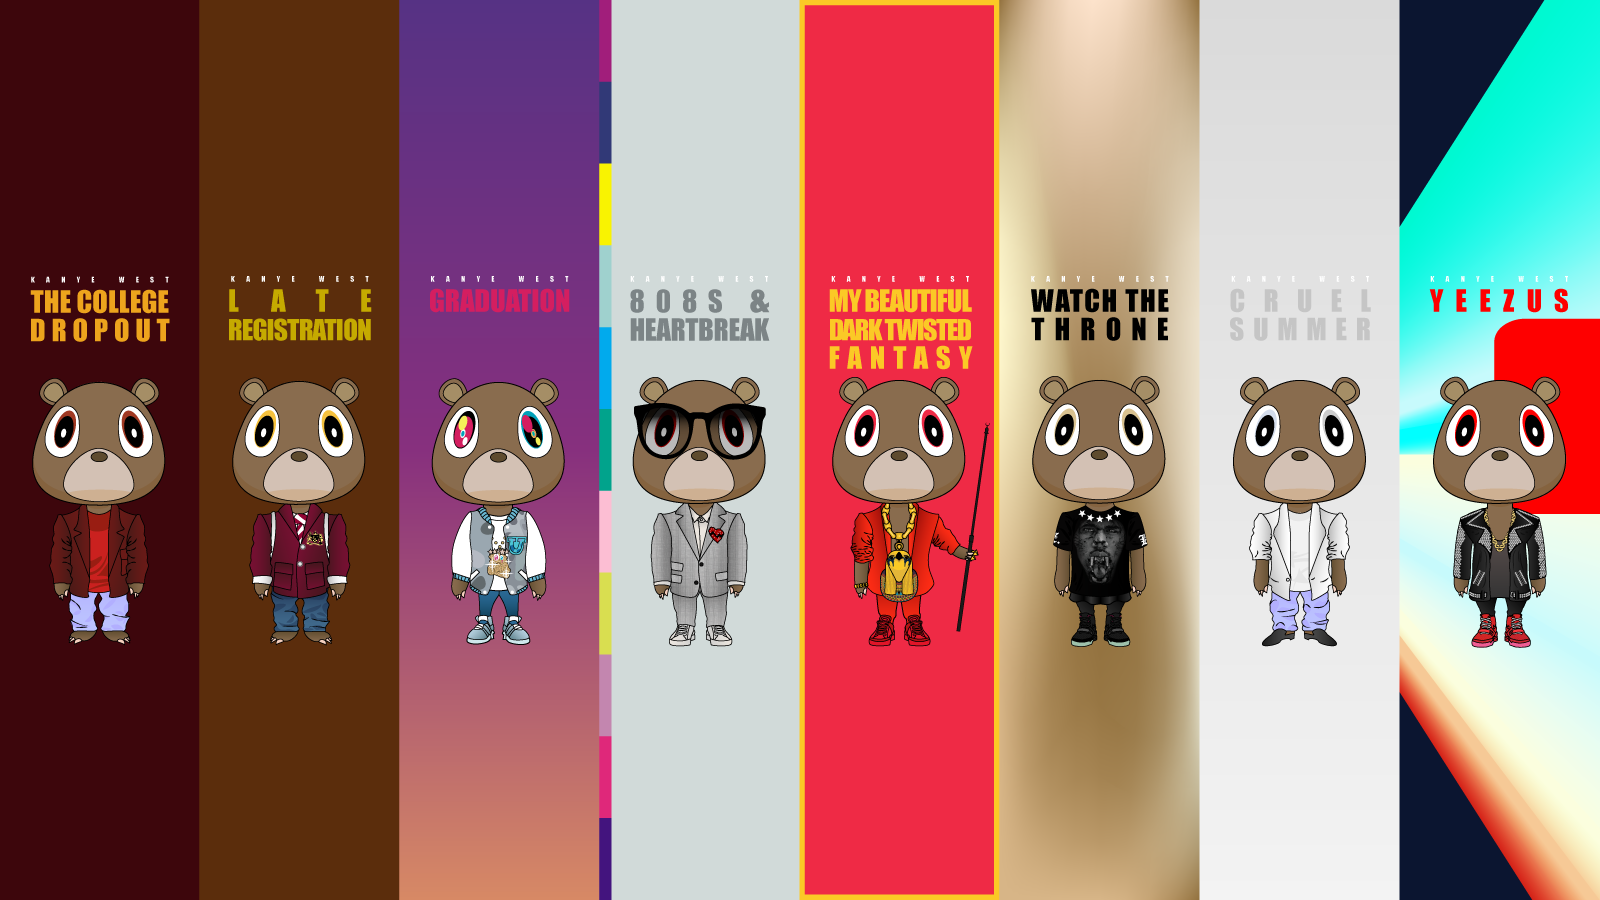 Pin By Brian Hudson On My Favorite Movie And Some Of My Favorite Music Artist Kanye West Graduation Bear Bear Wallpaper Kanye West Graduation